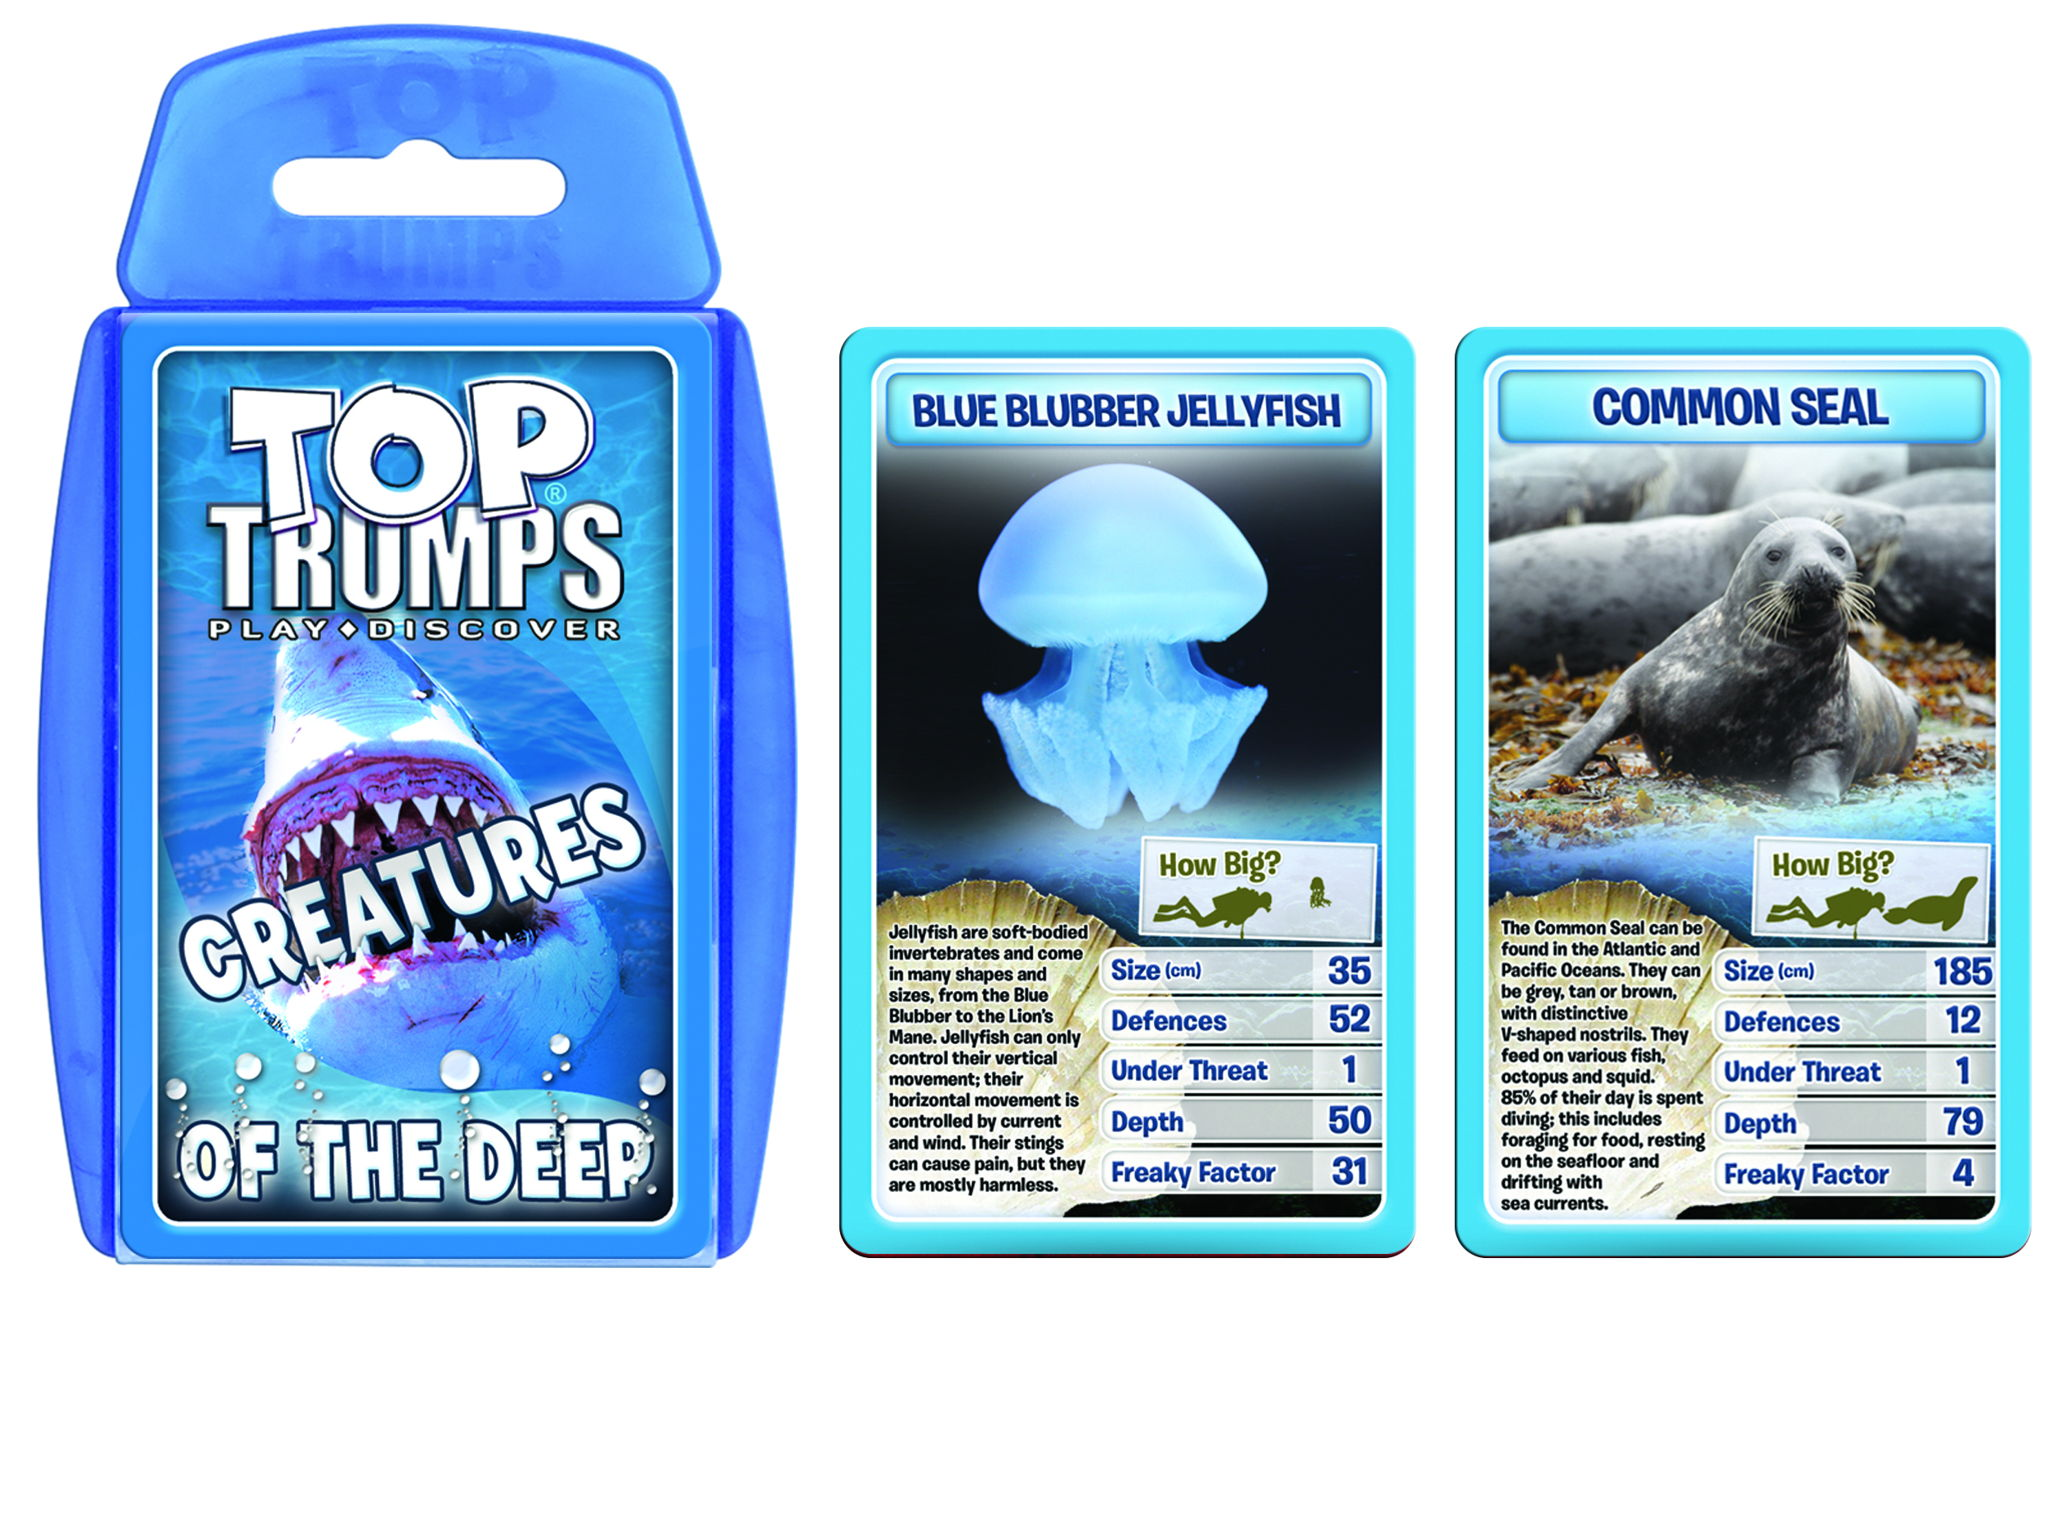 Official Creatures of the Deep Top Trumps